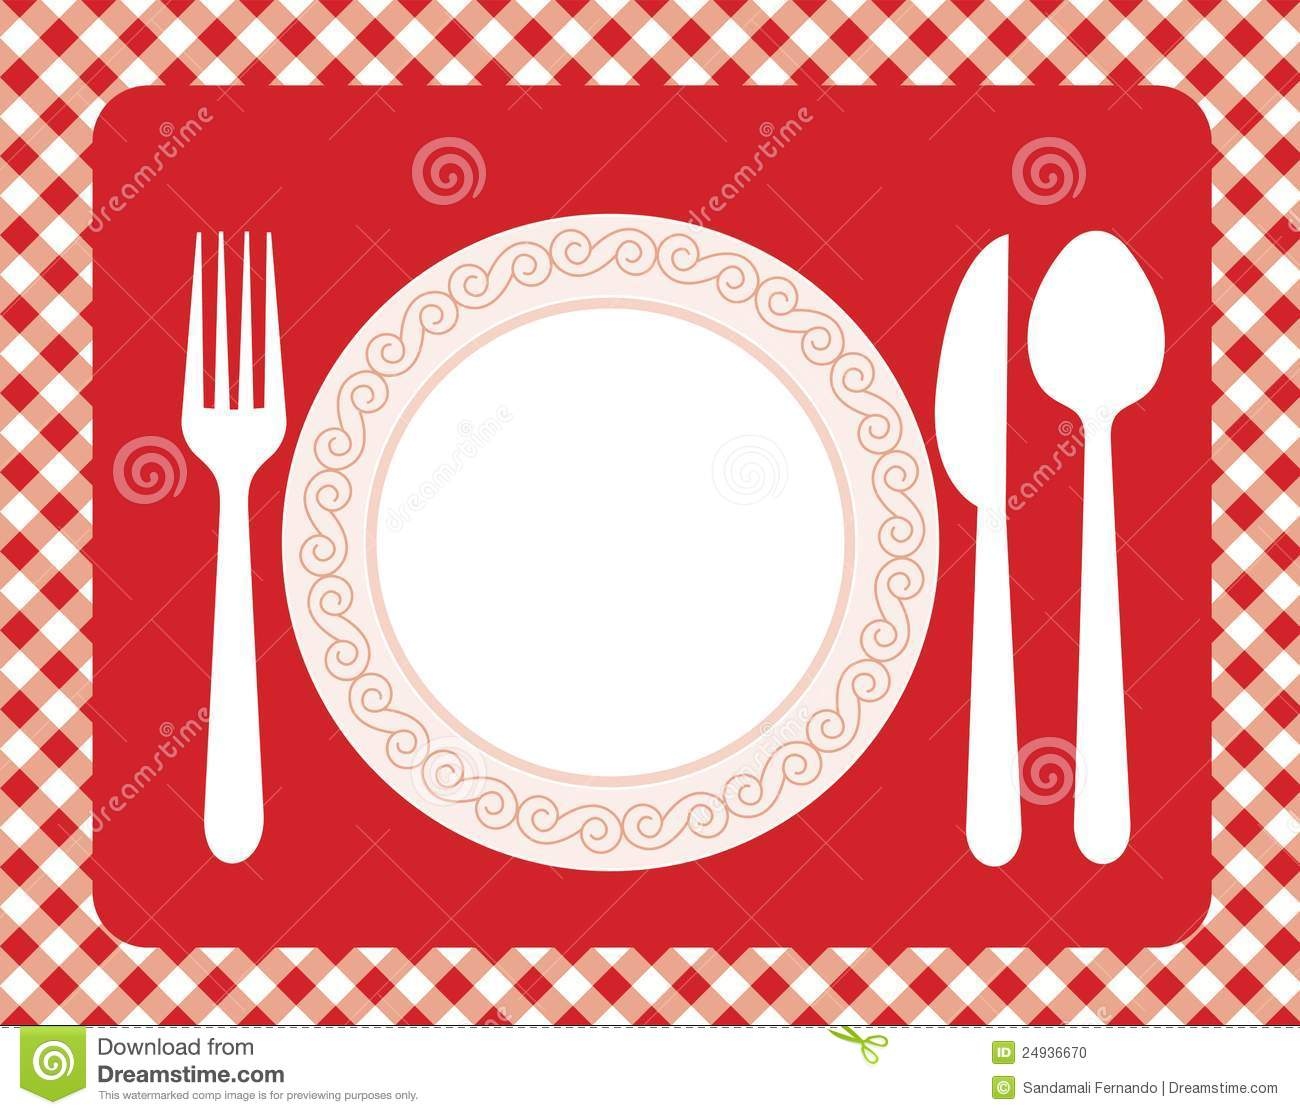 Dinner Invitation Card Background With Spoon Knife And Fork